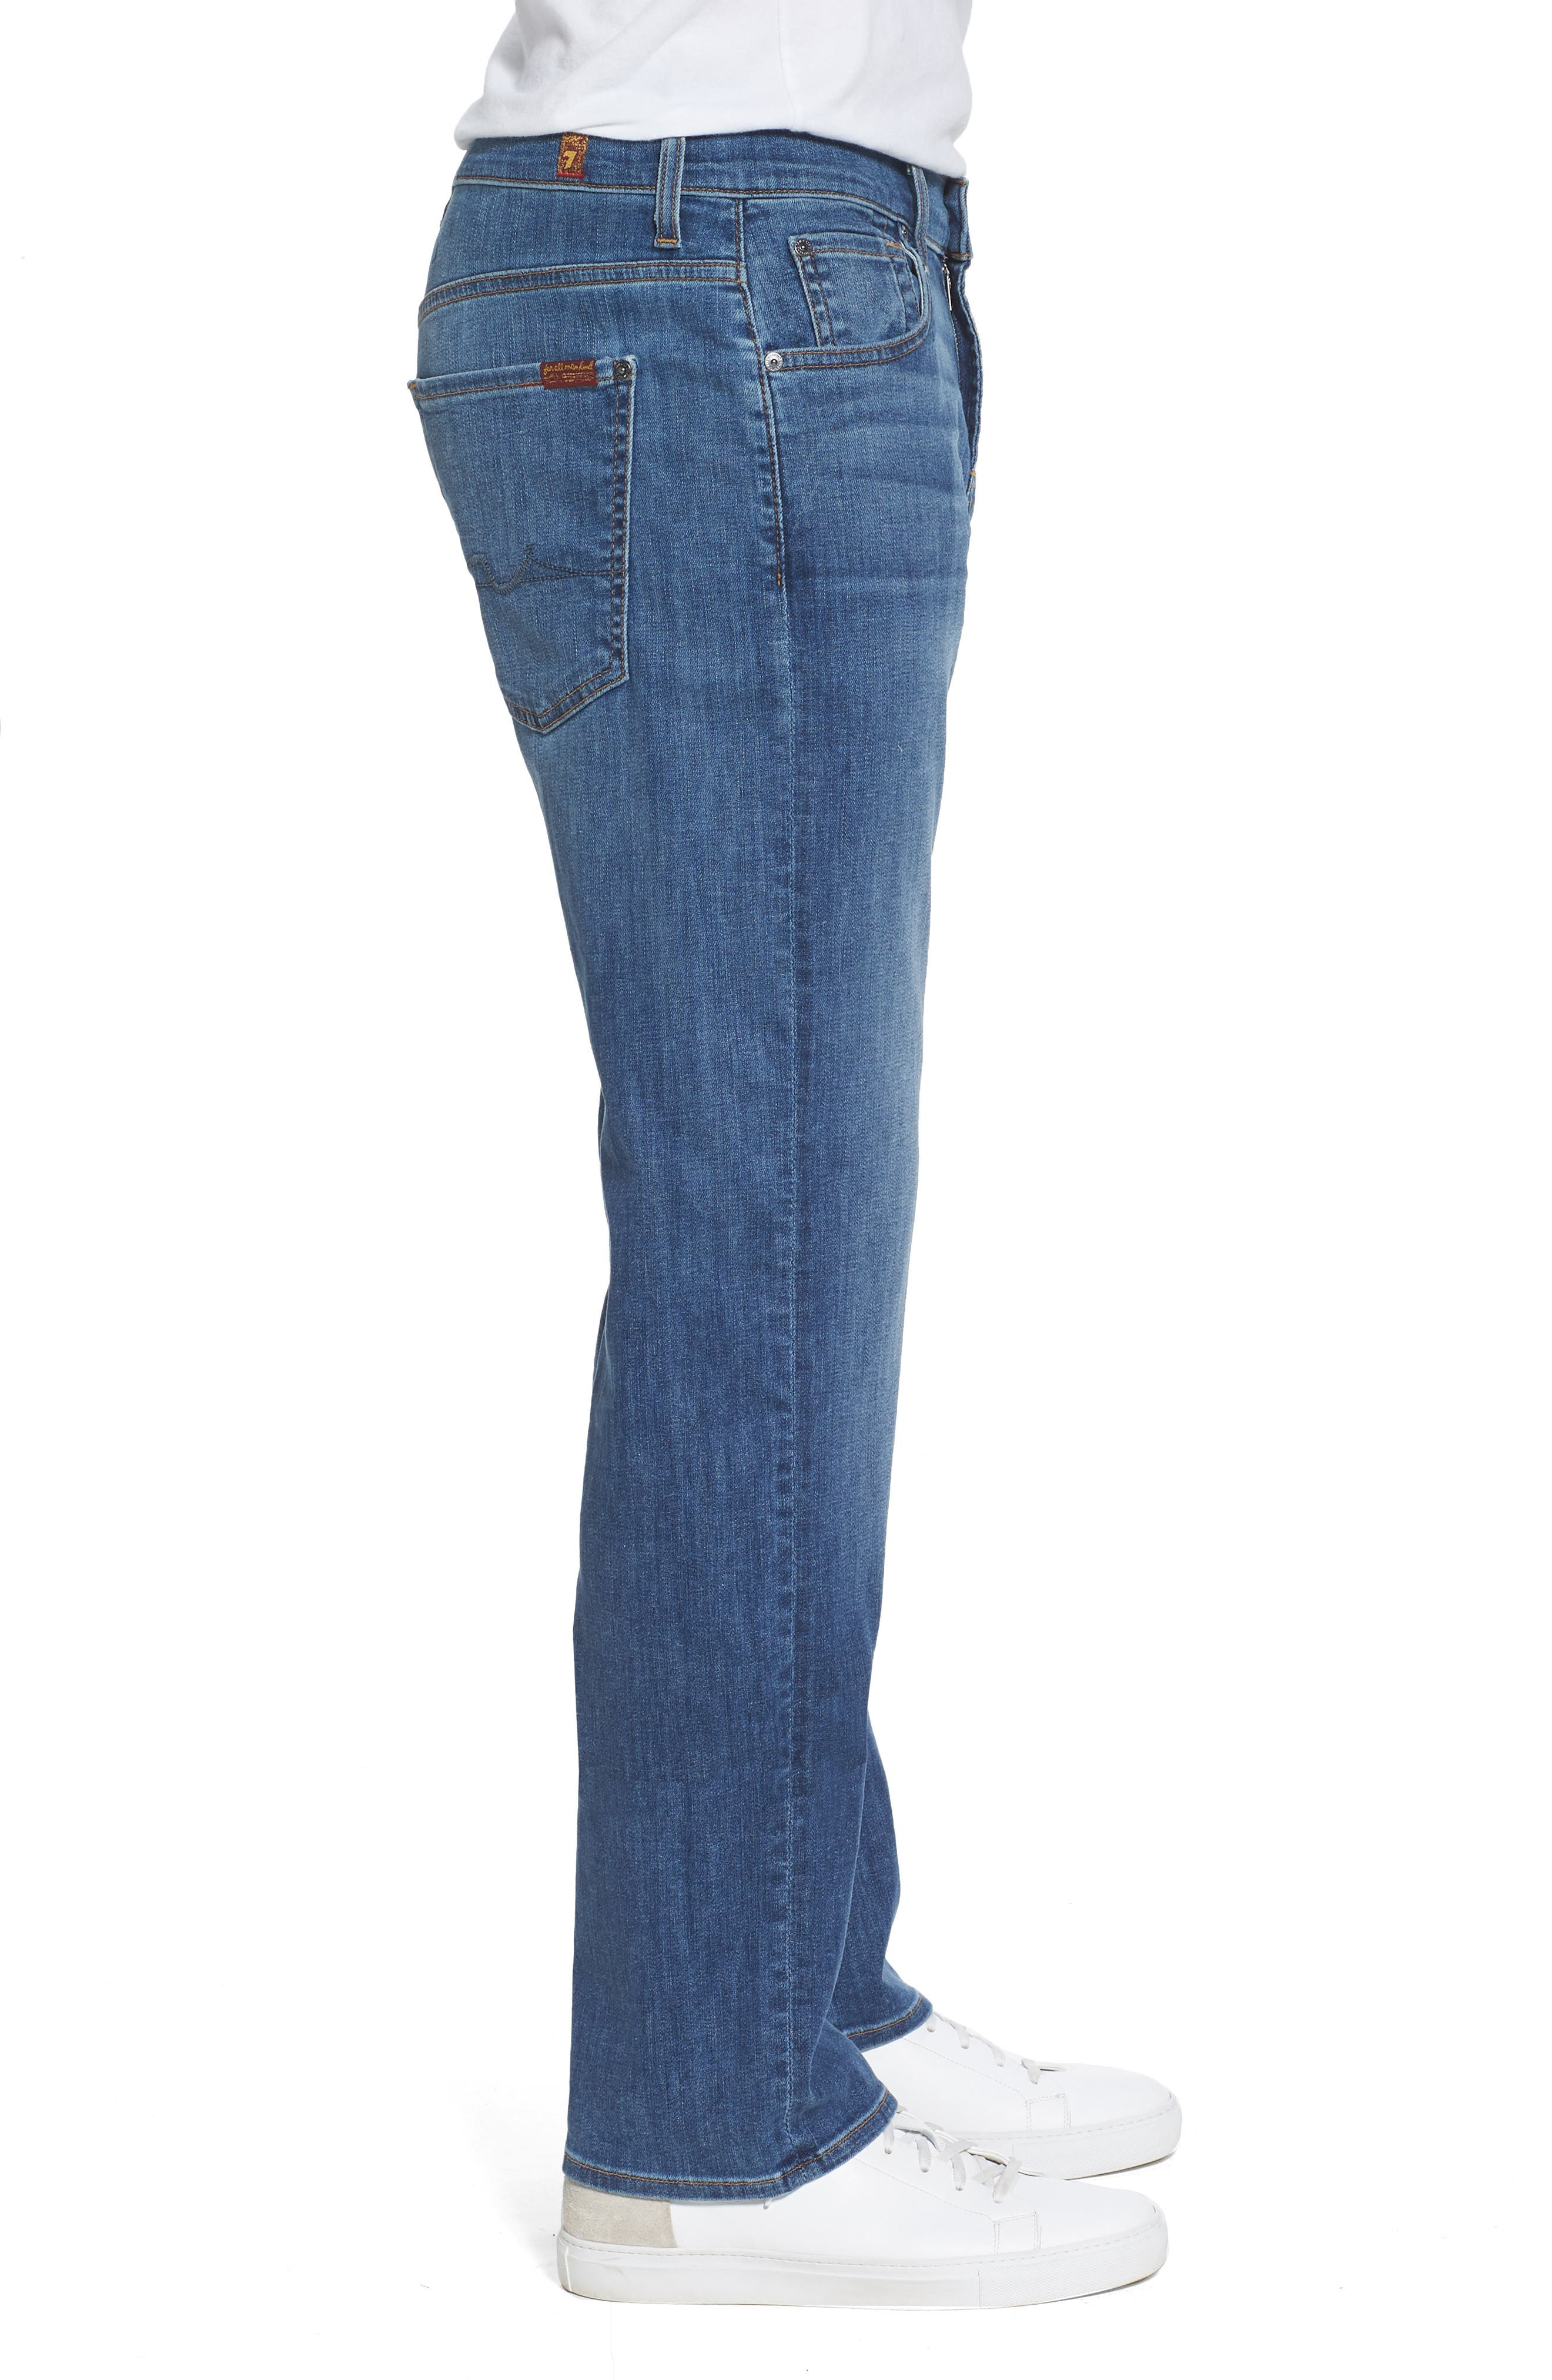 Austyn Relaxed Fit Jeans,                             Alternate thumbnail 3, color,                             Rain Shadow